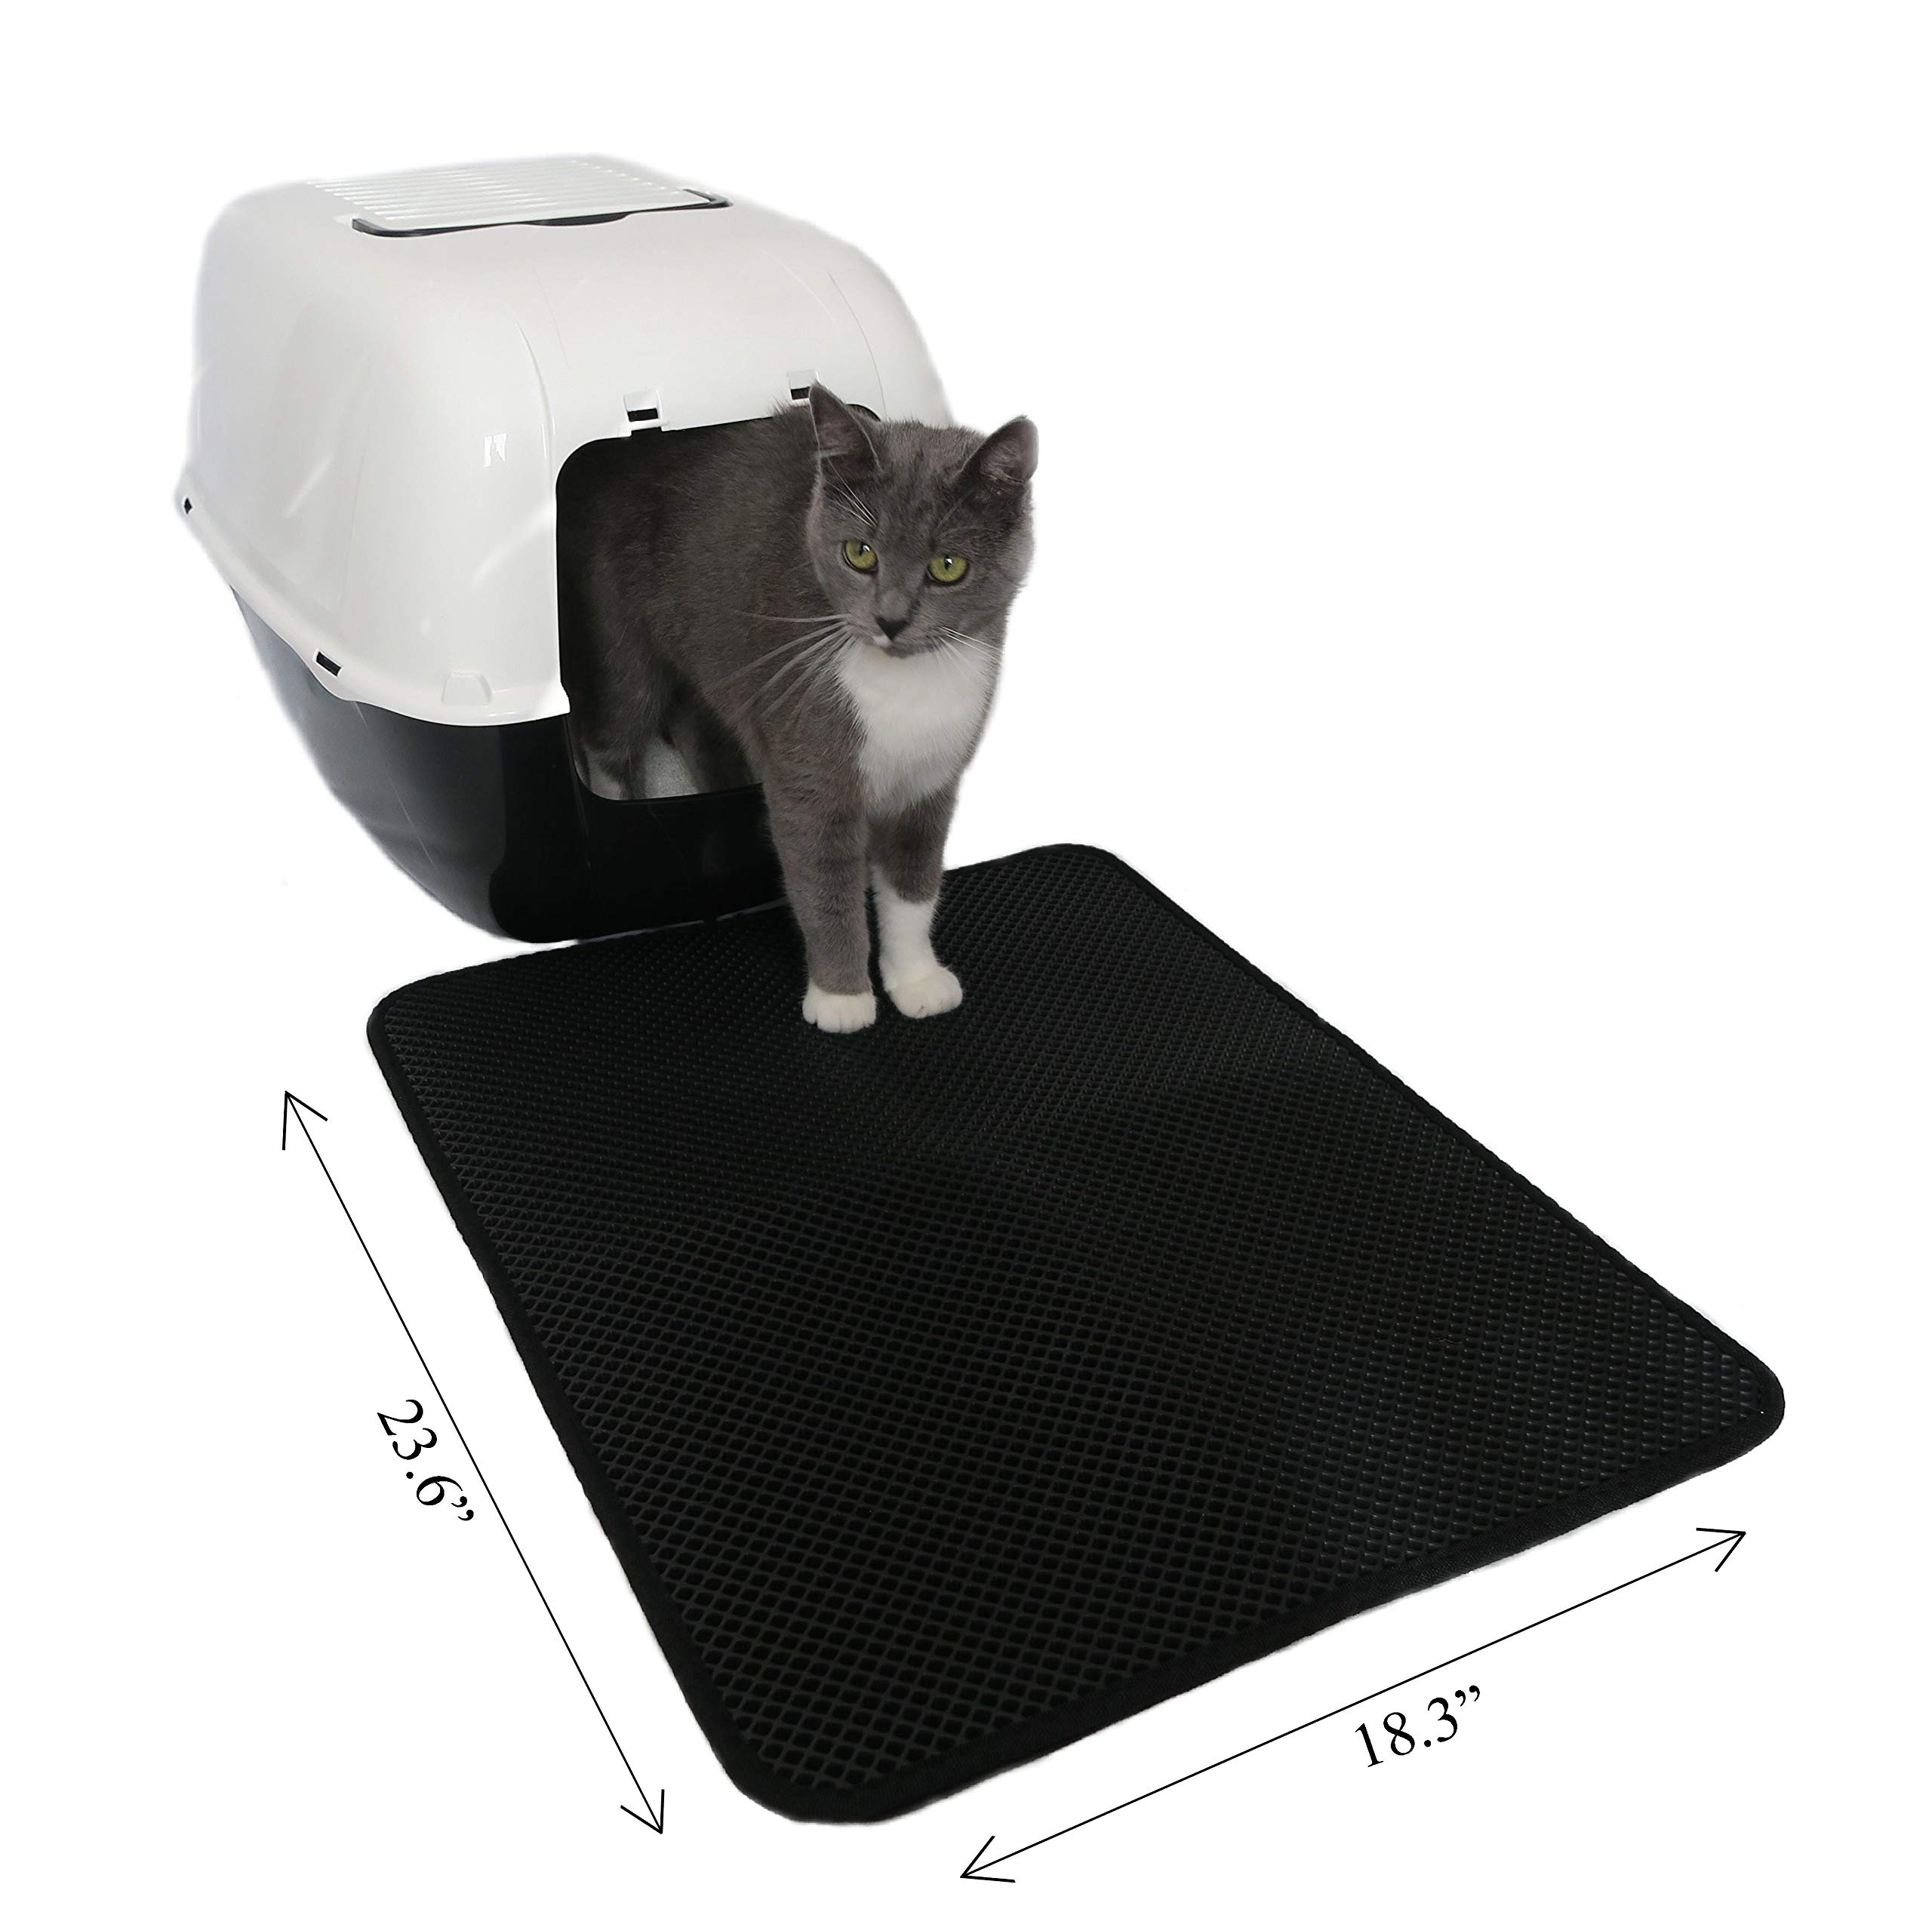 Ankamy (18.3''x23.6'') Perfect Size for Cat Litter Mat Trapper Double Layer Design, Lightweight, Durable and Waterproof.